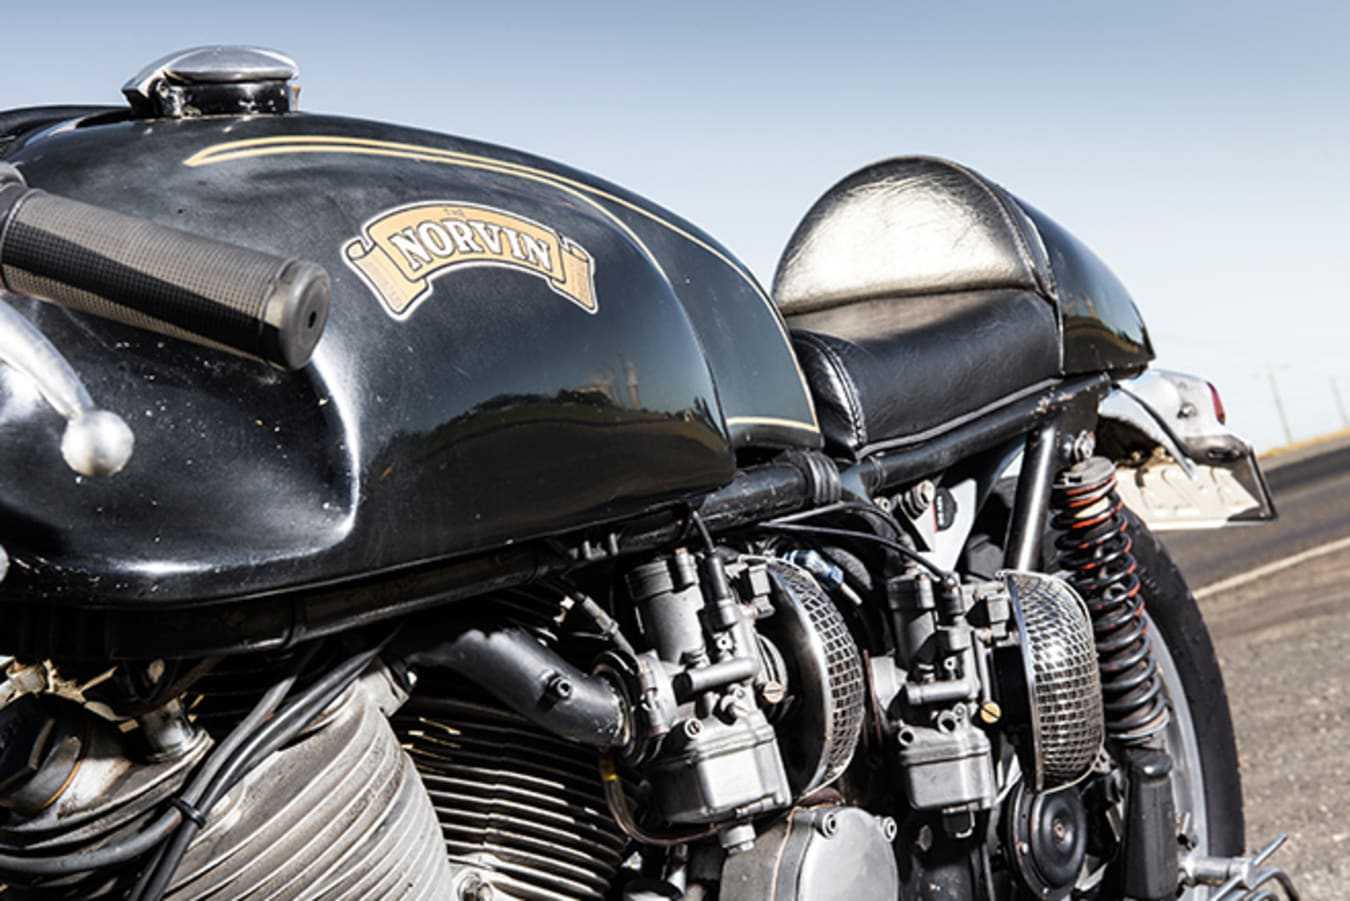 Norvin motorcycle